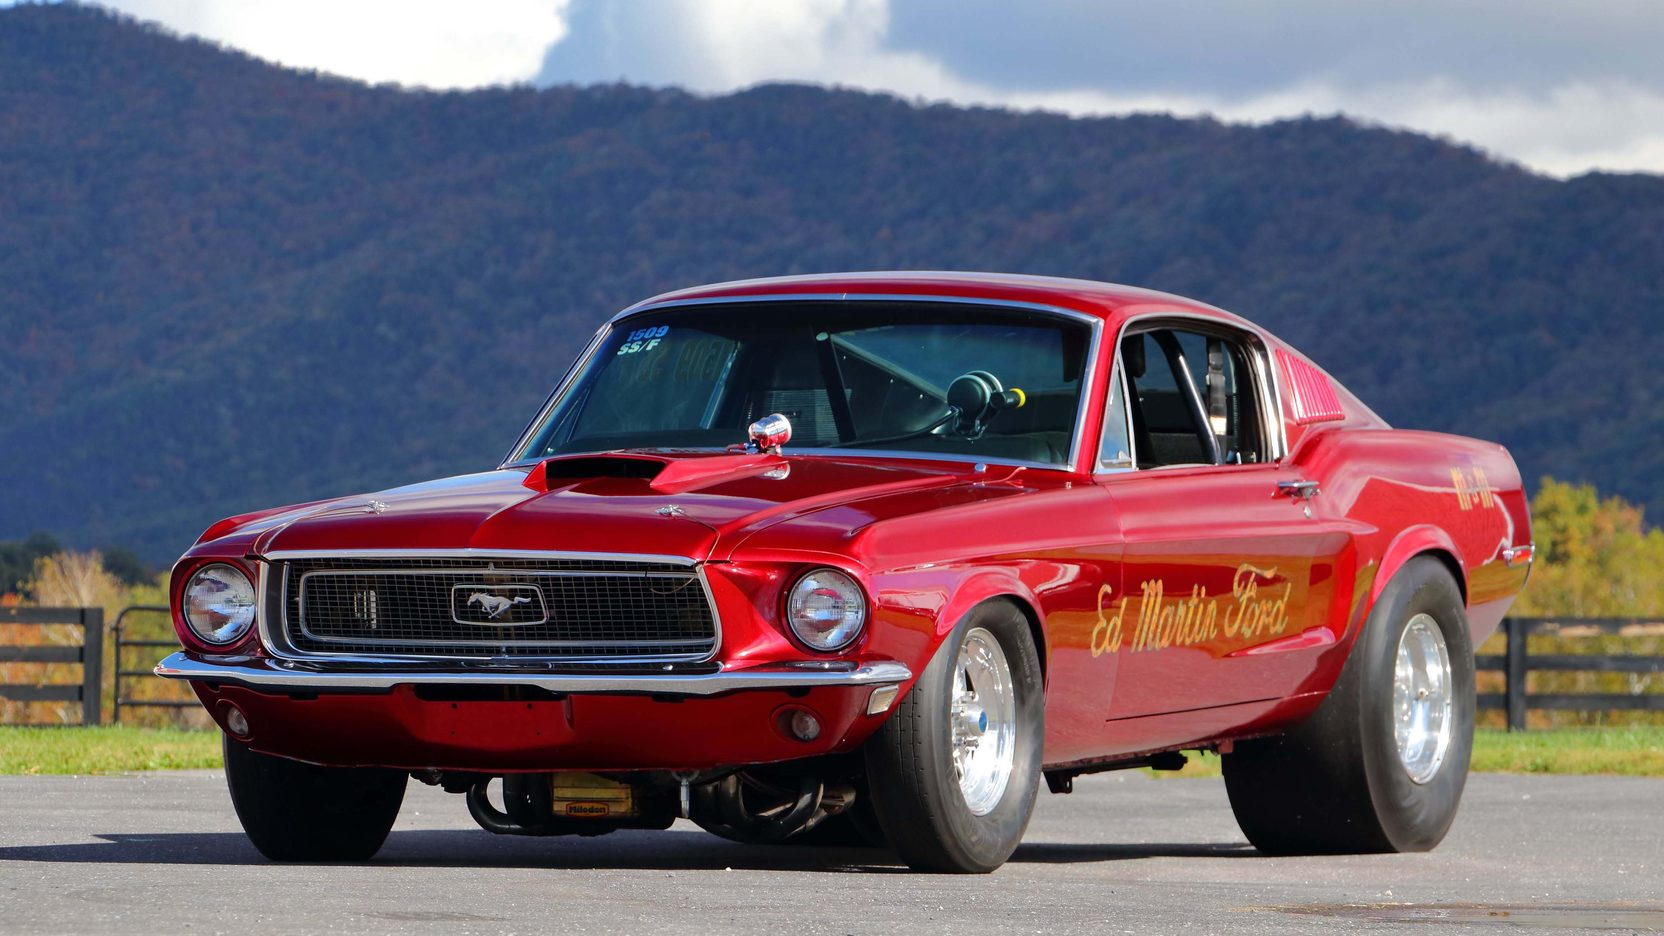 Mecum Kissimmee 2017 Auction Coverage: The Drag Cars |